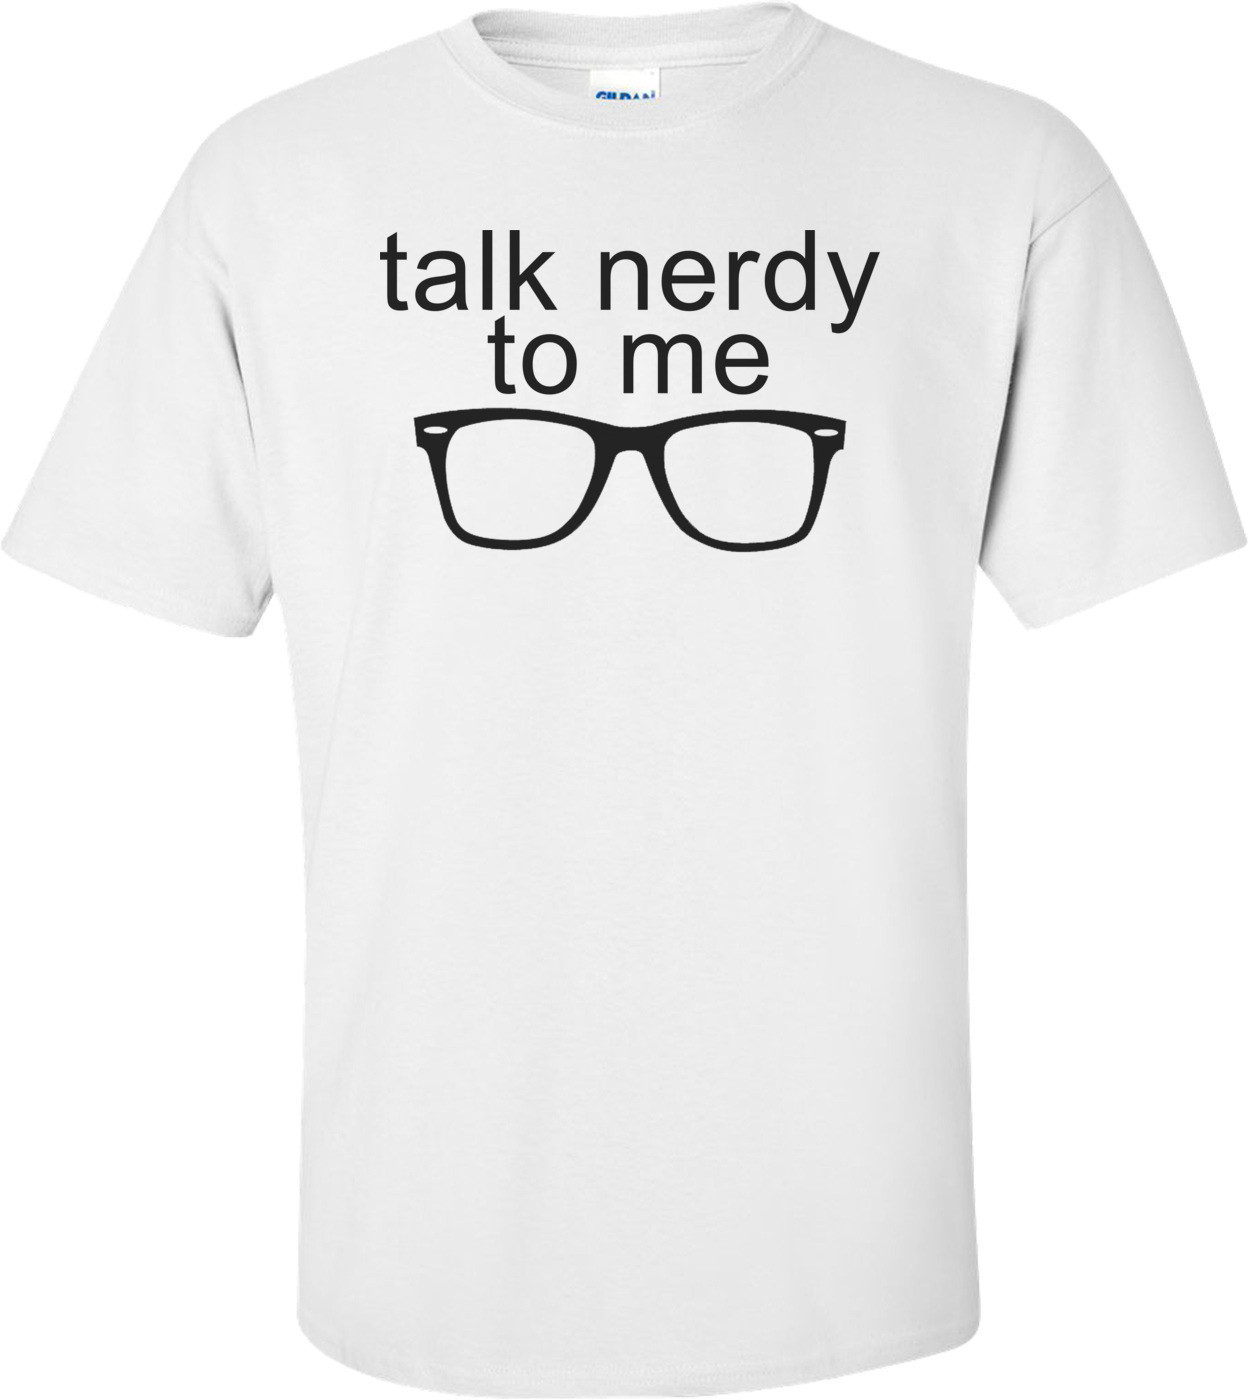 Talk Nerdy To Me Funny Shirt